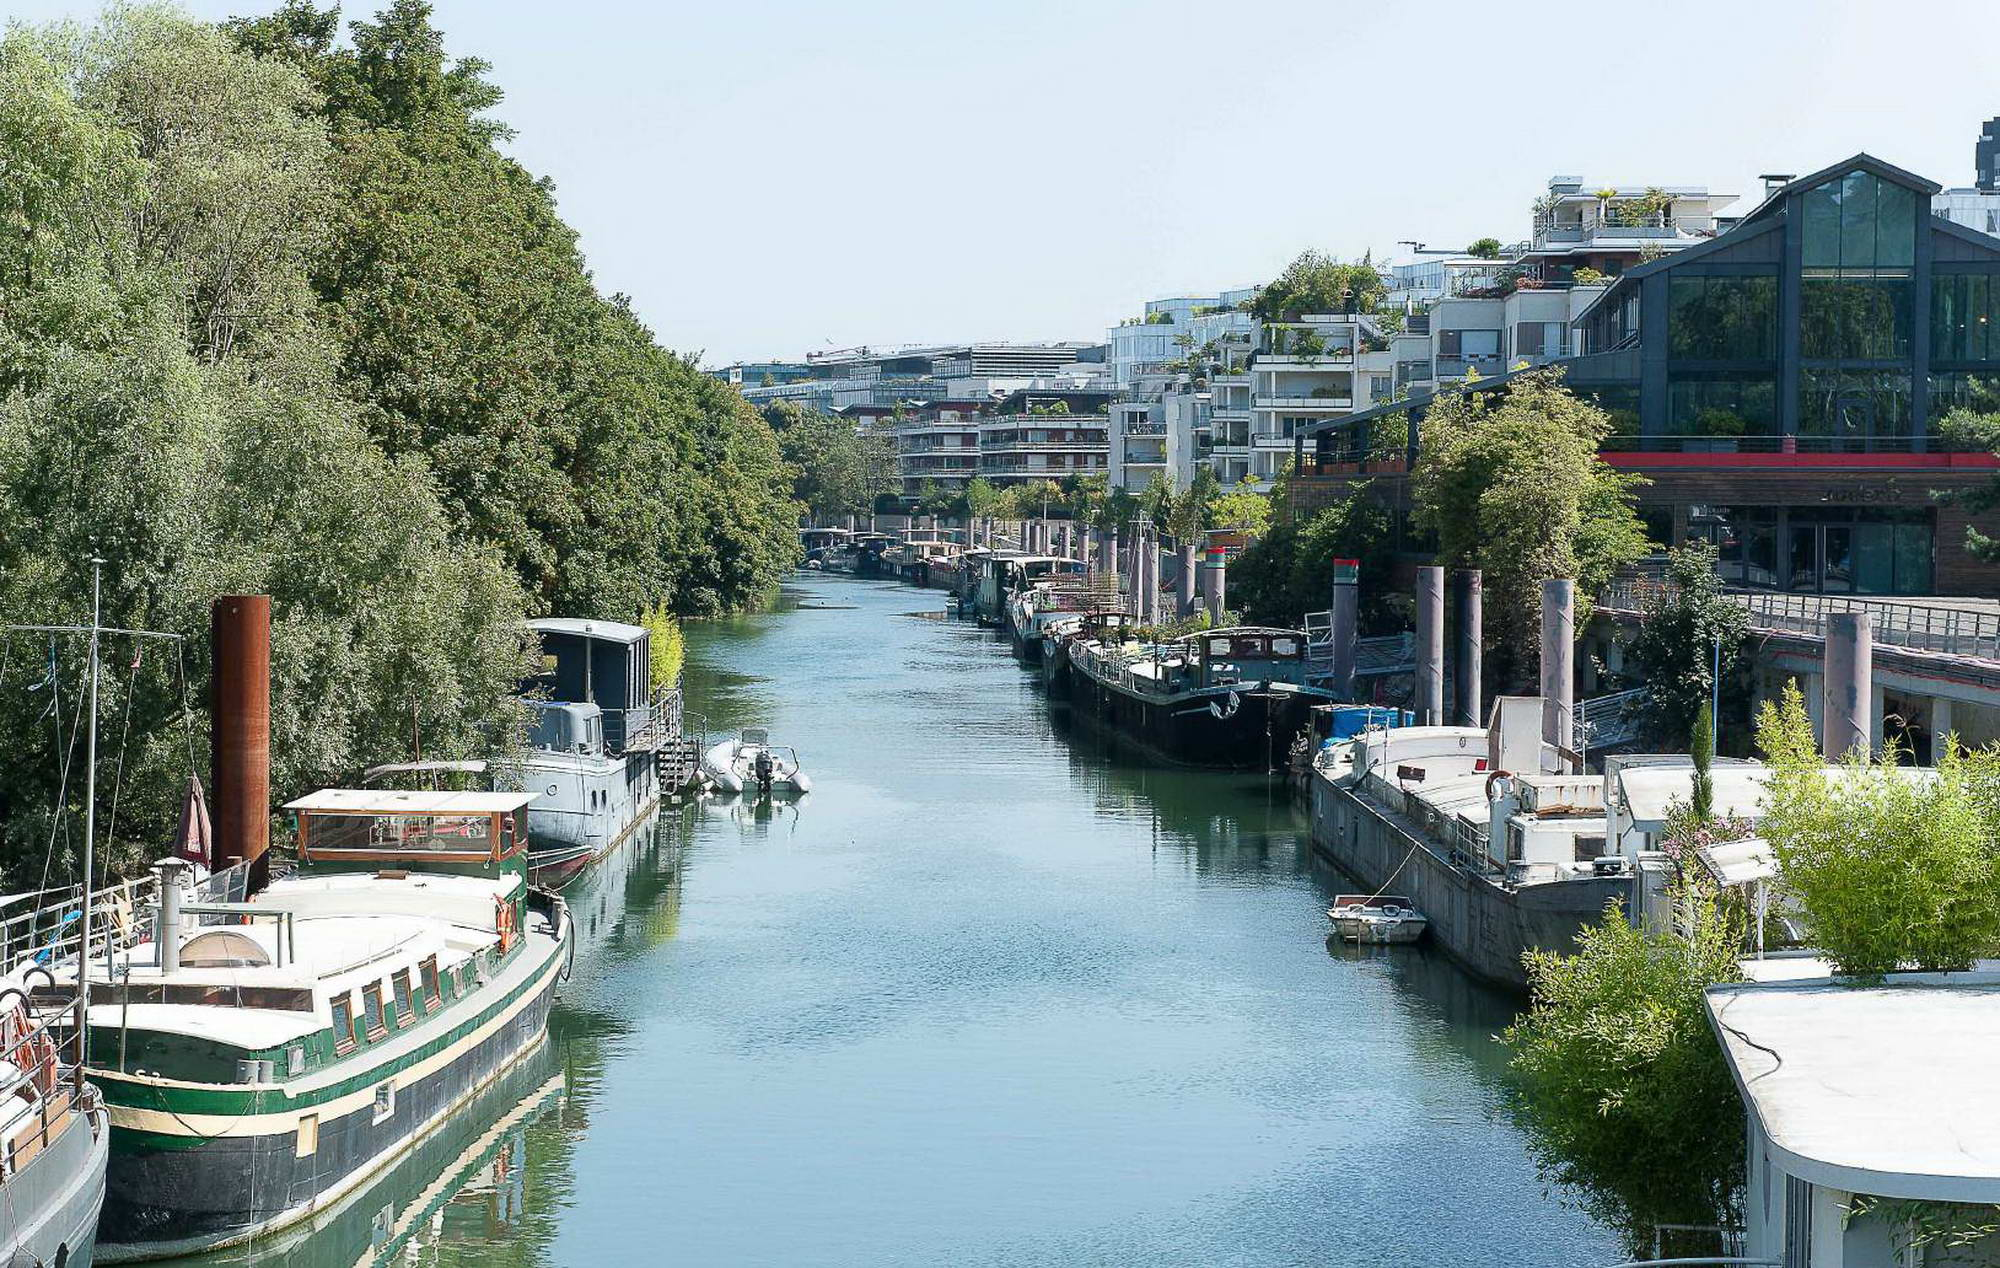 Canal Issy les Moulineaux investissement immobilier